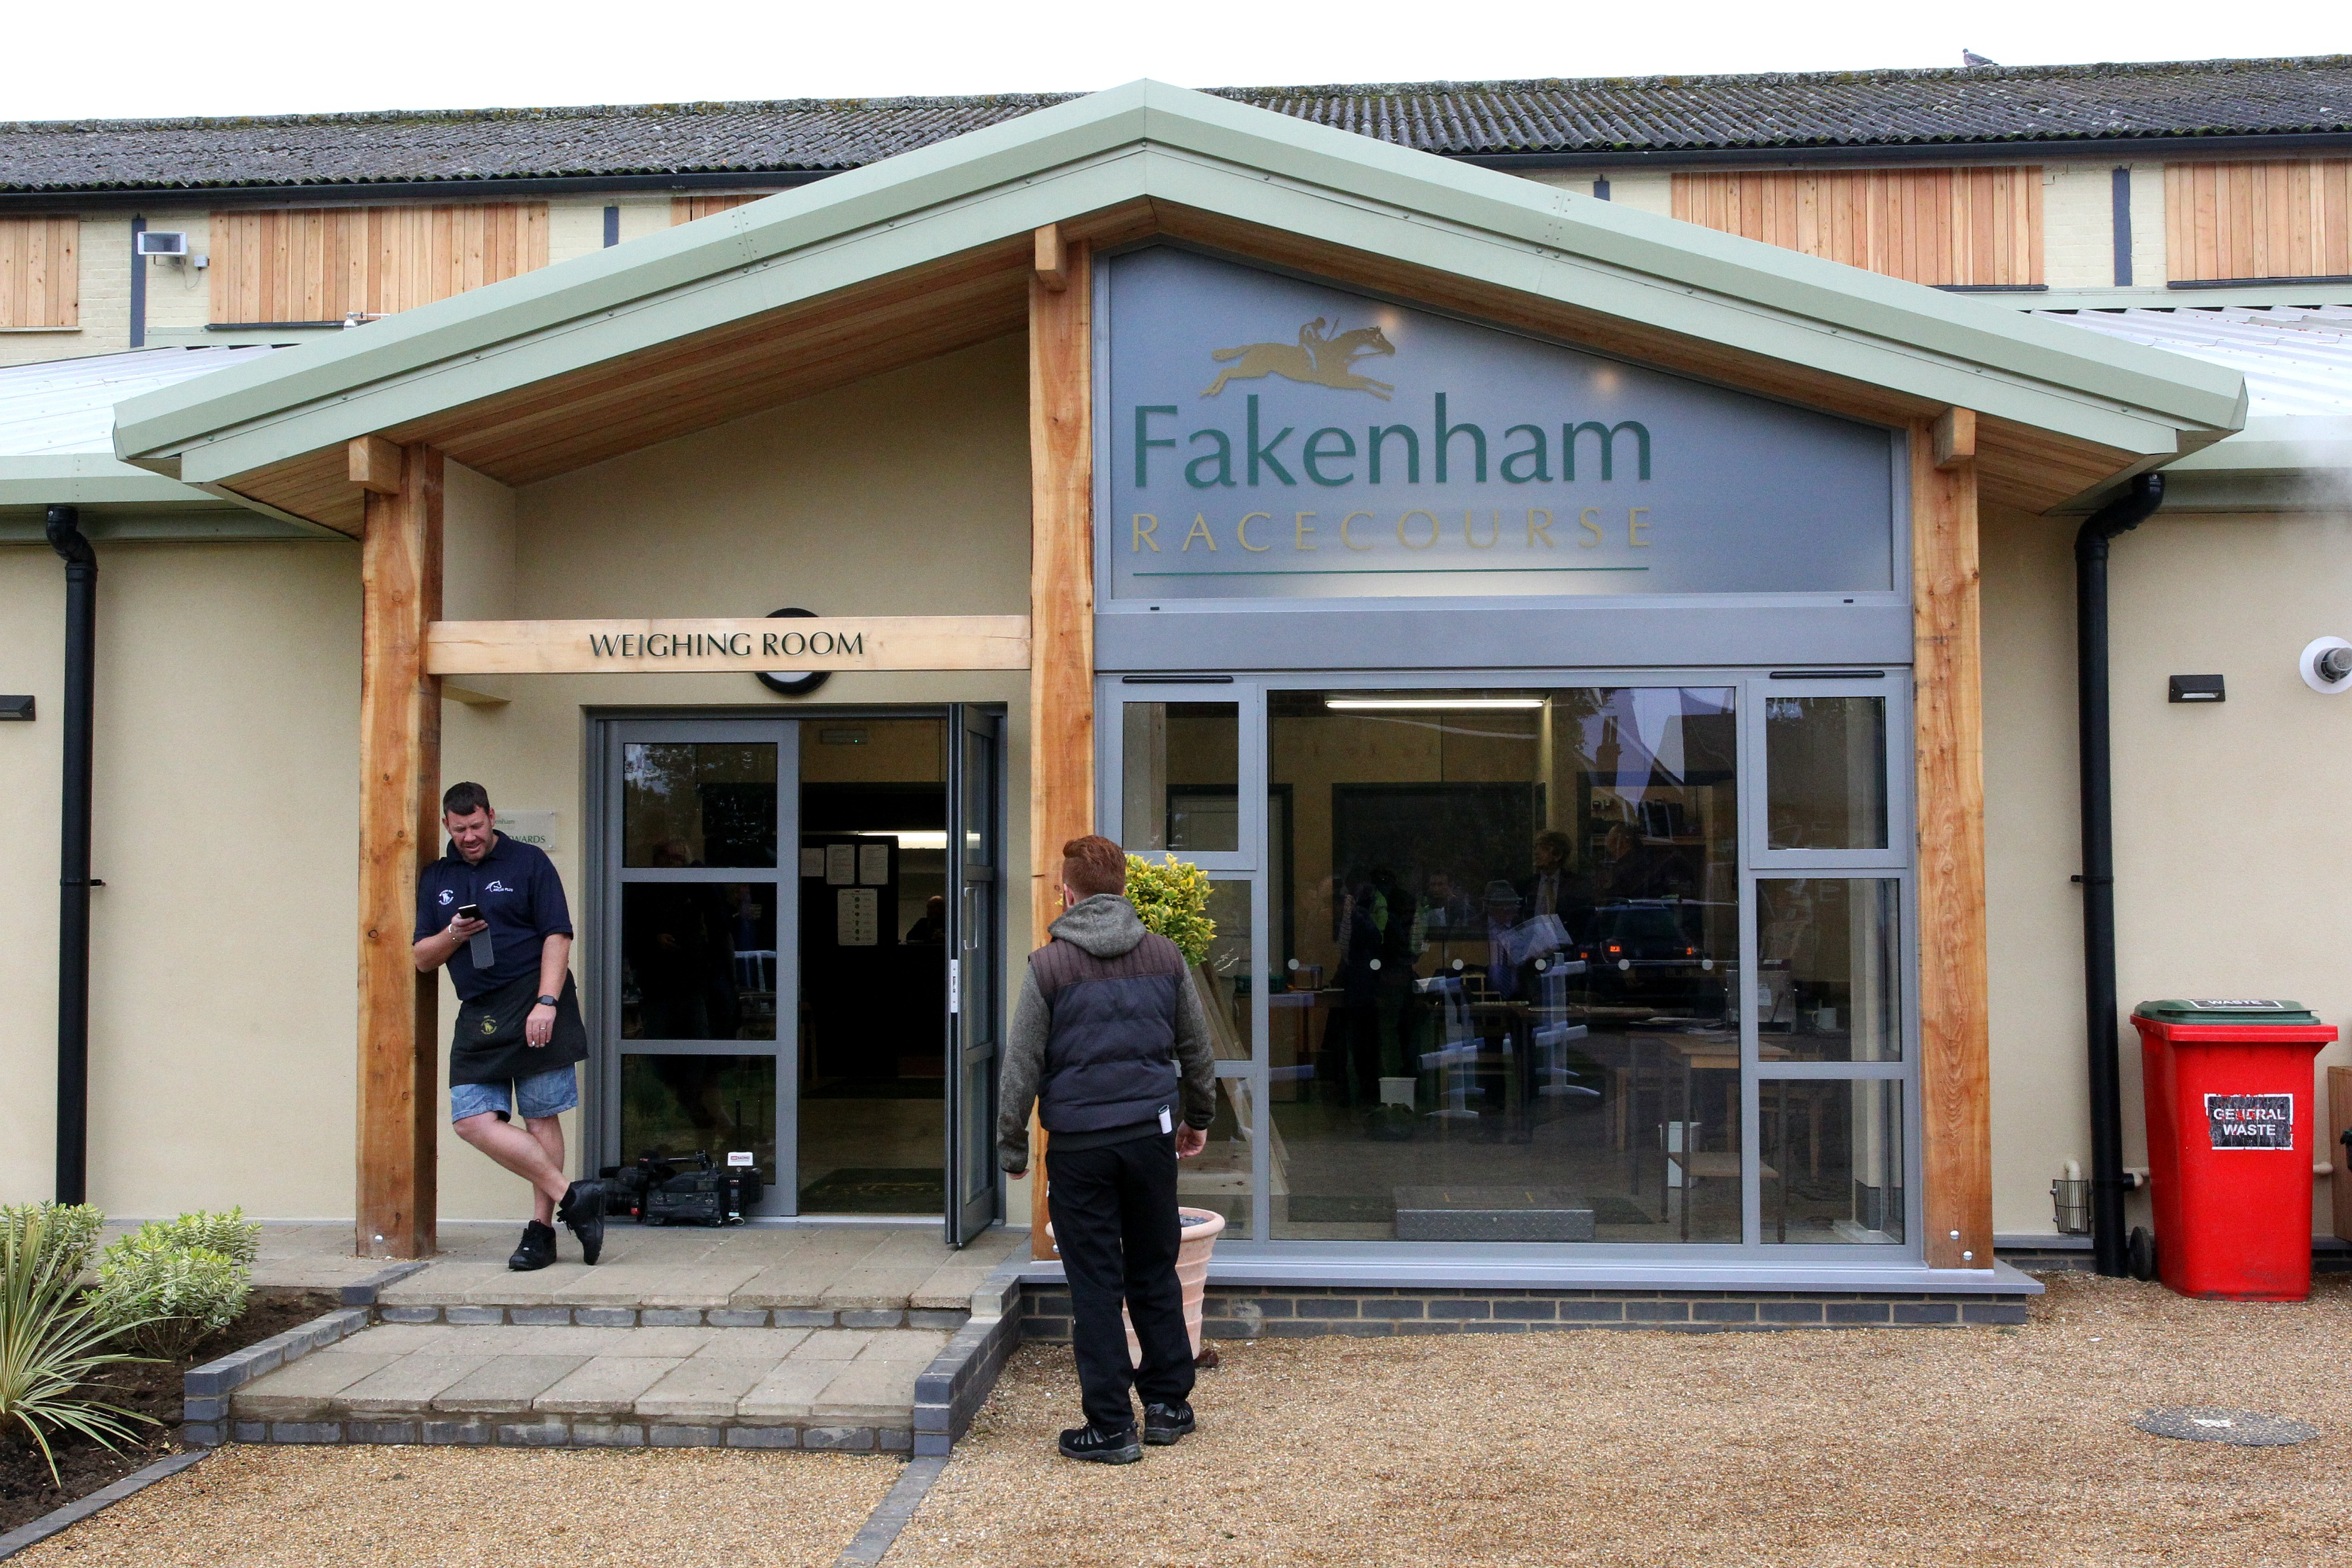 The Weigh-In room at Fakenham Racecourse